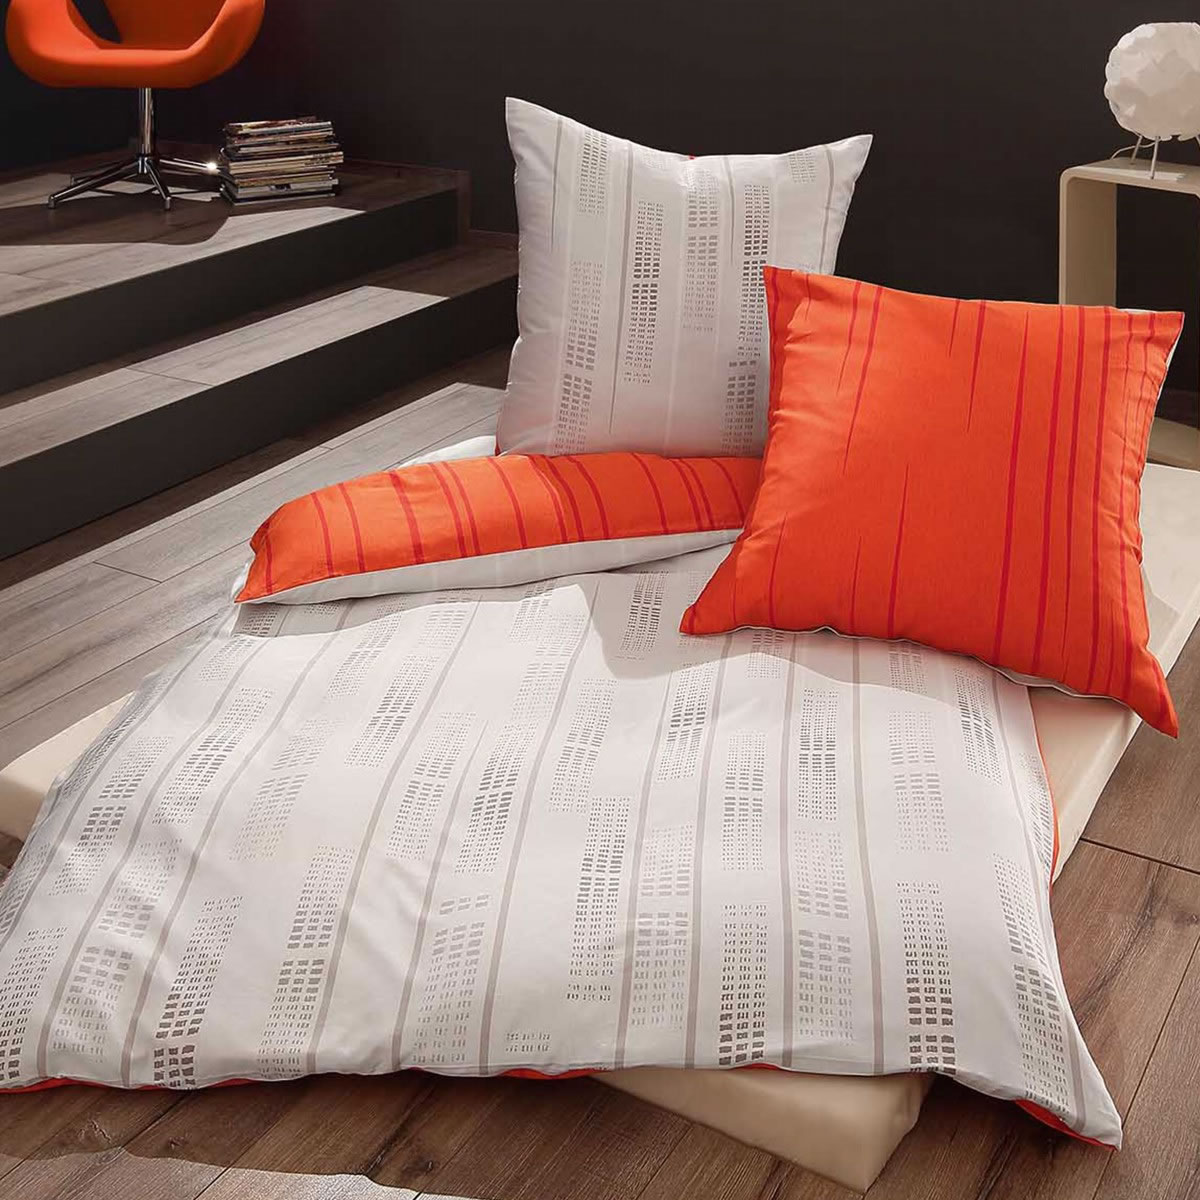 kaeppel mako satin wendebettw sche design fading 50639 orange natur. Black Bedroom Furniture Sets. Home Design Ideas